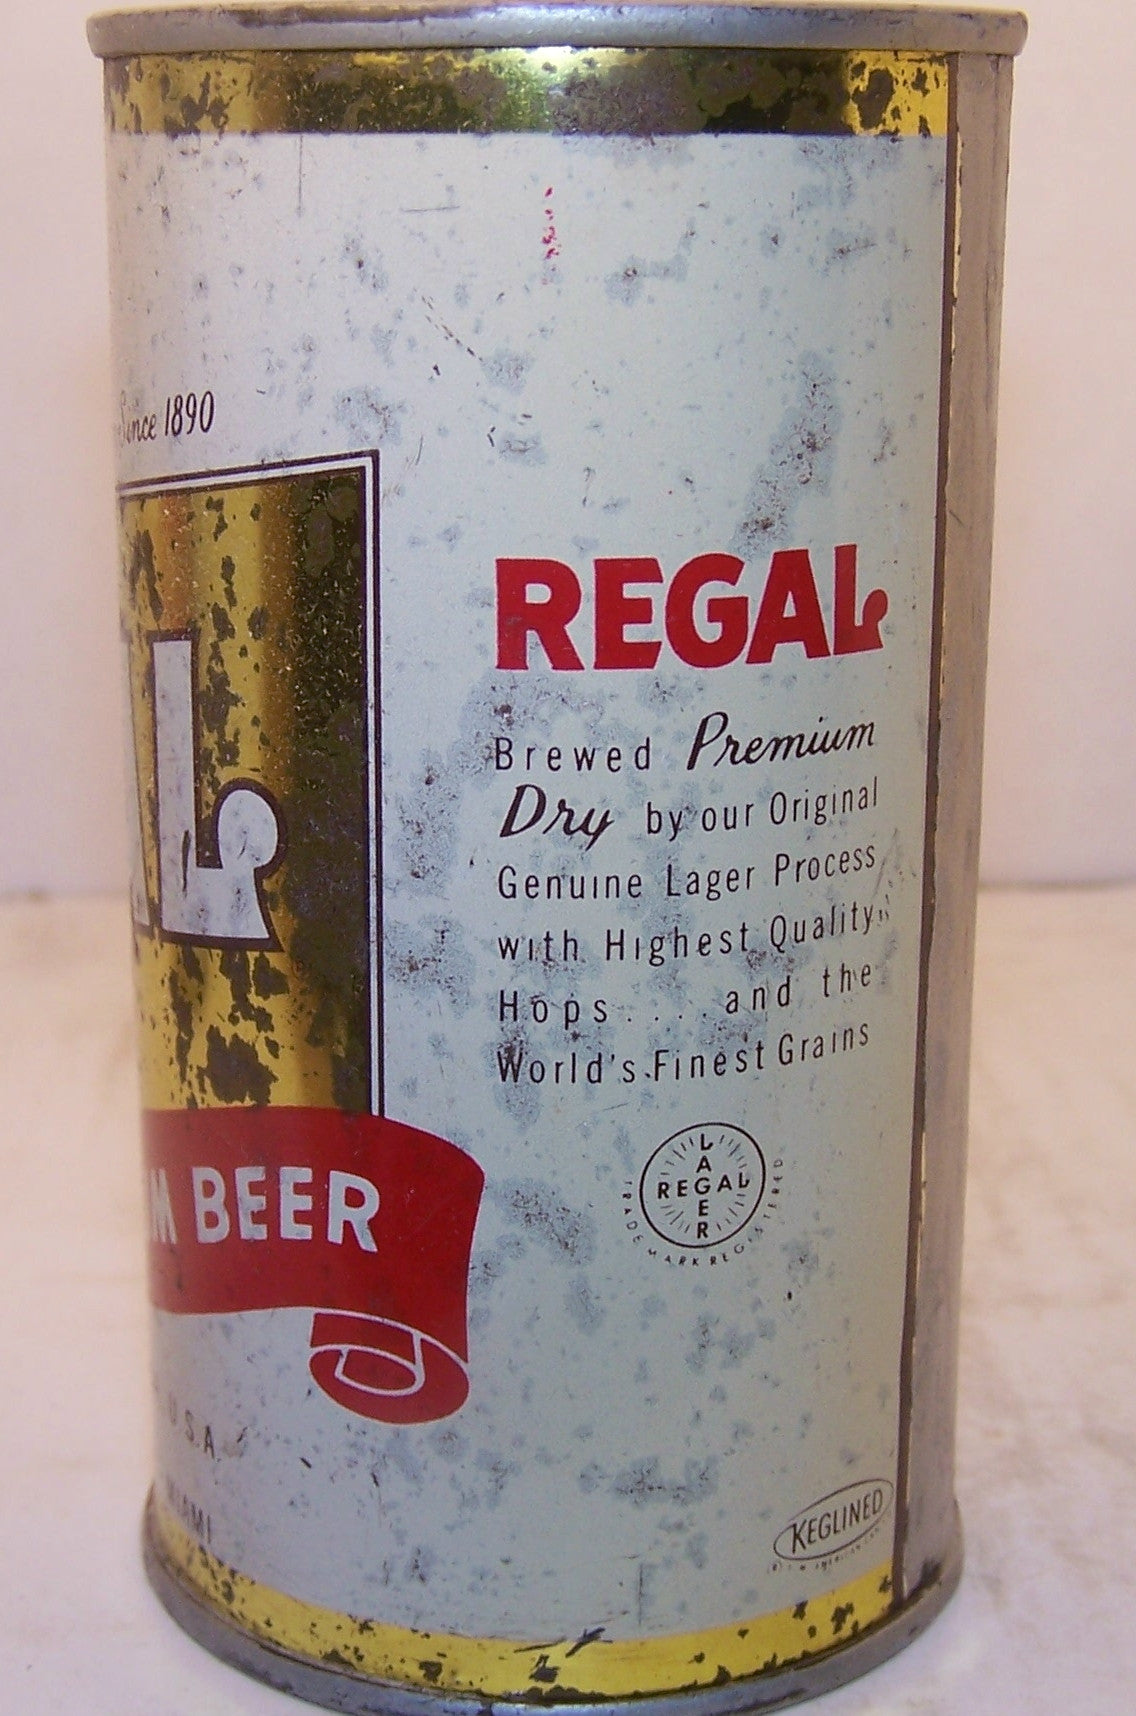 Regal Premium Beer, USBC 121-29 Rare can, Grade 2+